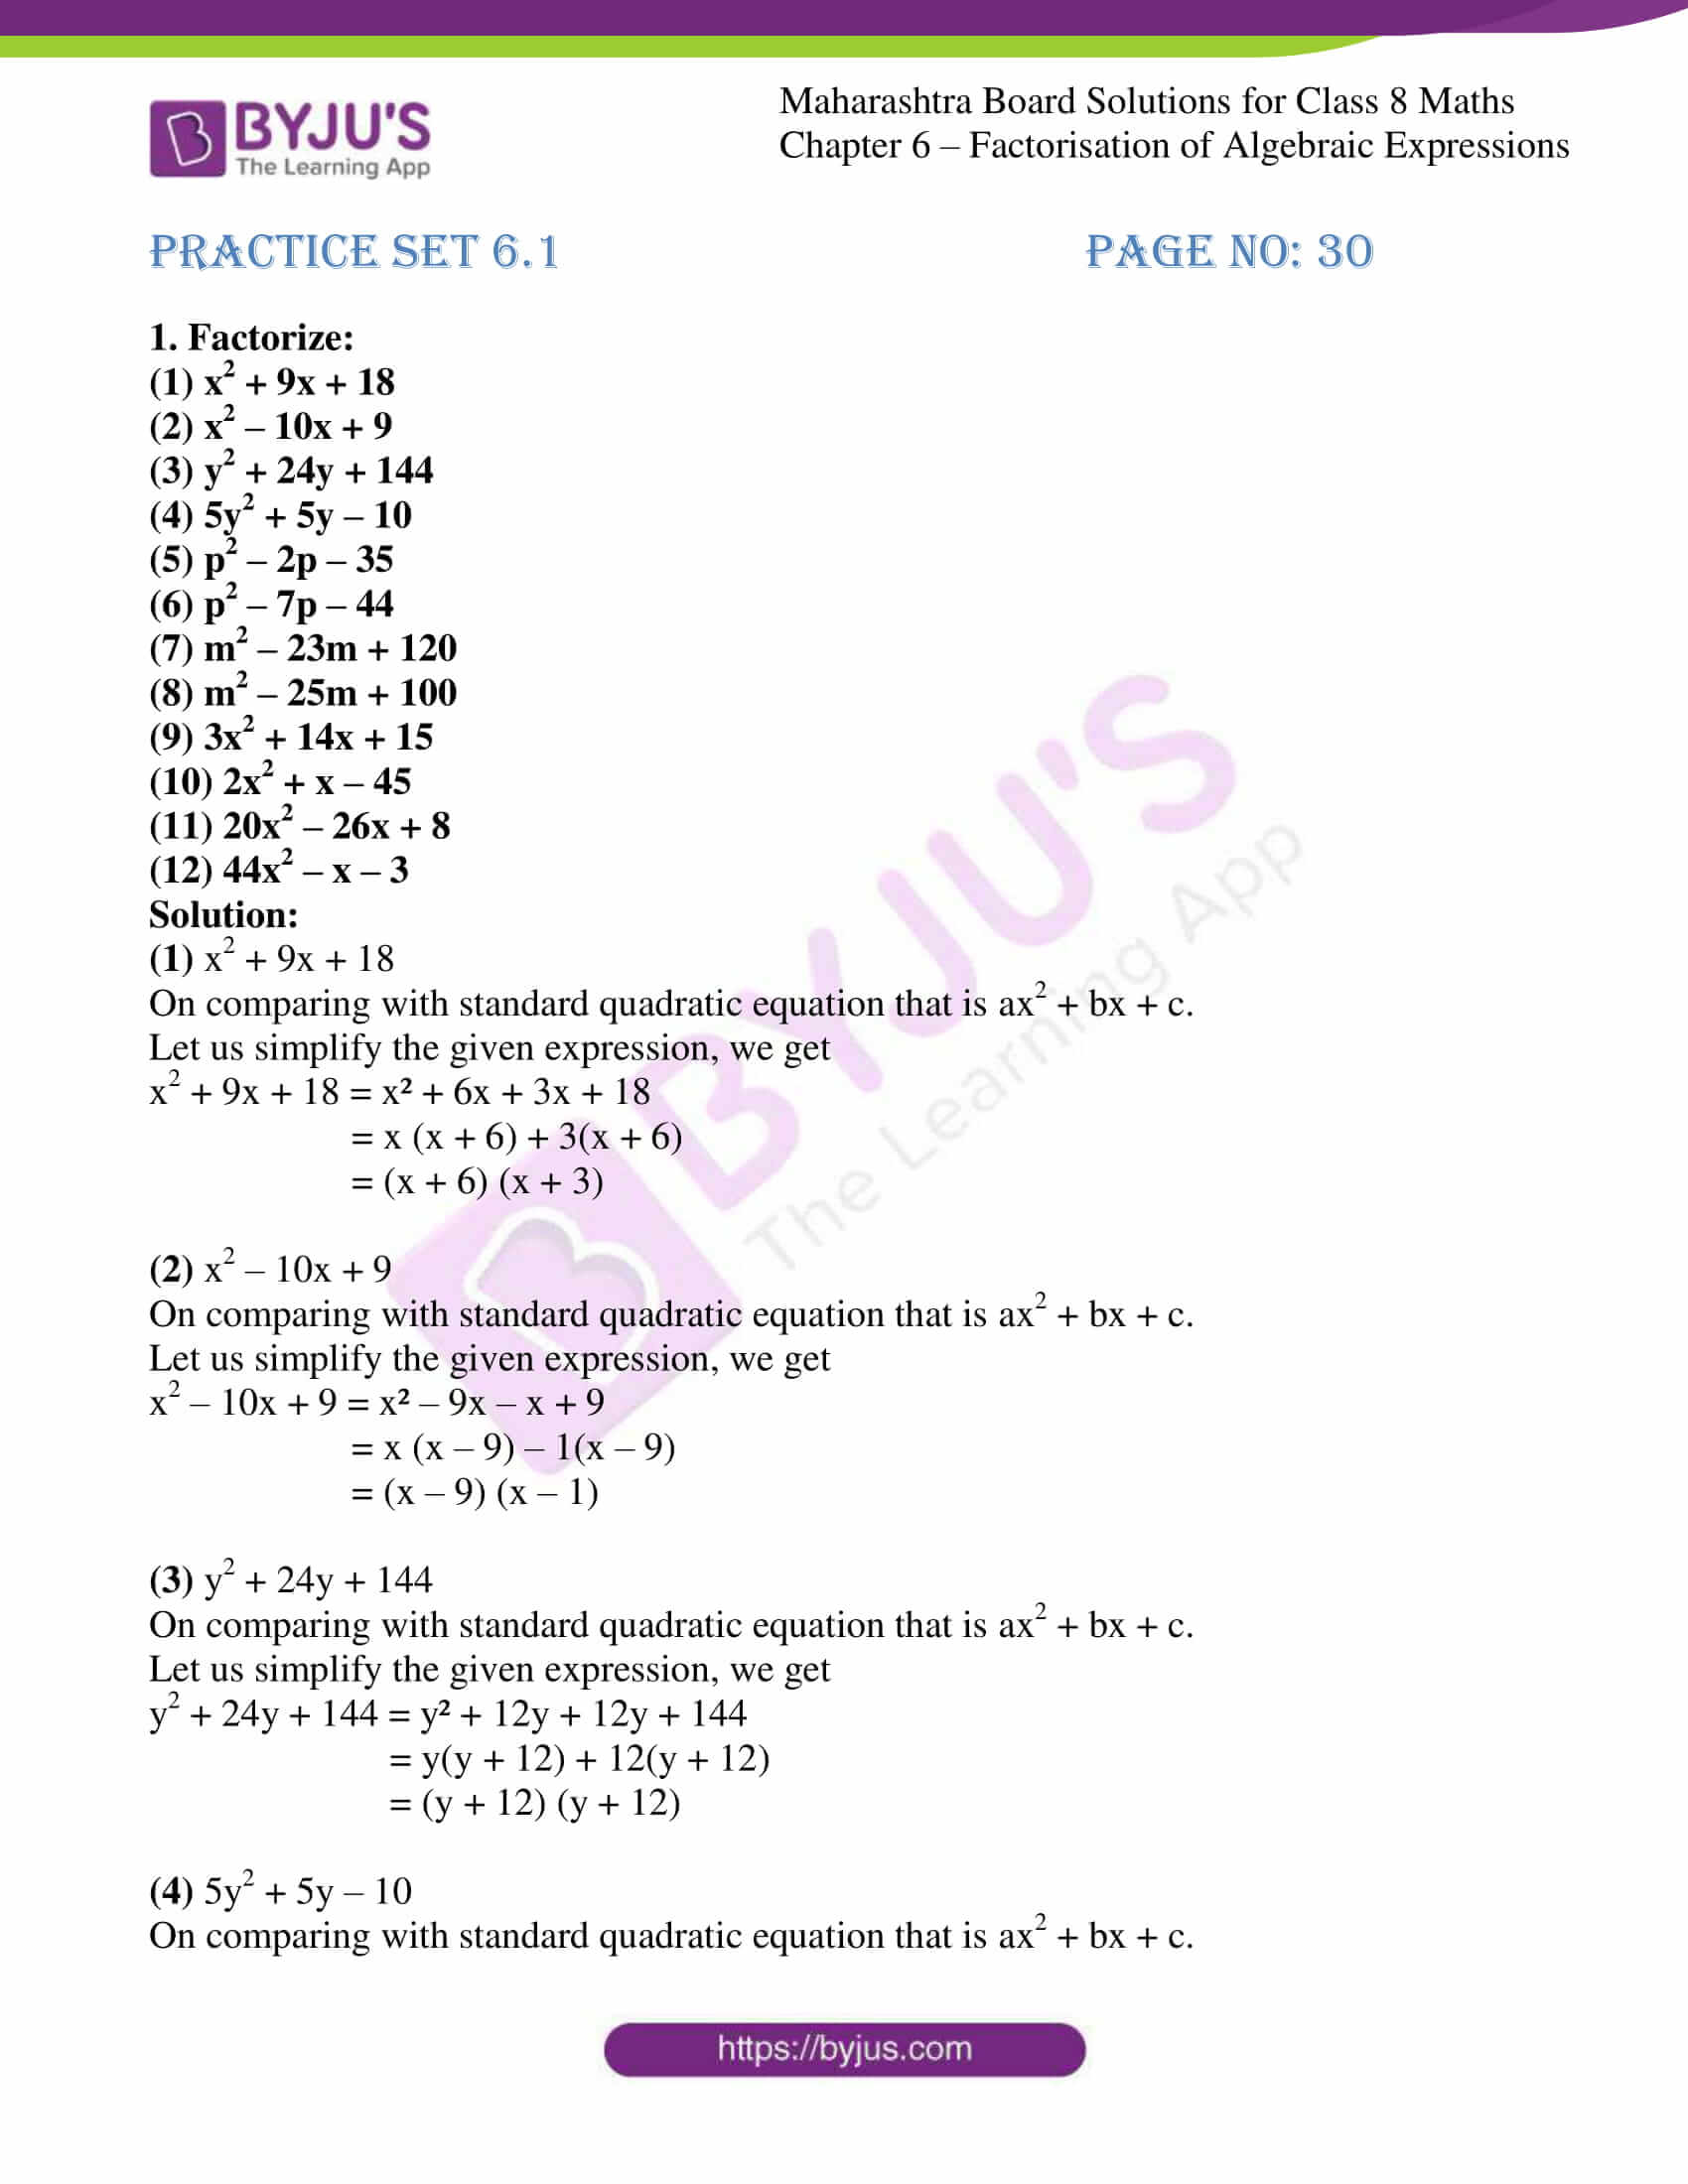 msbshse sol for class 8 maths chapter 6 01